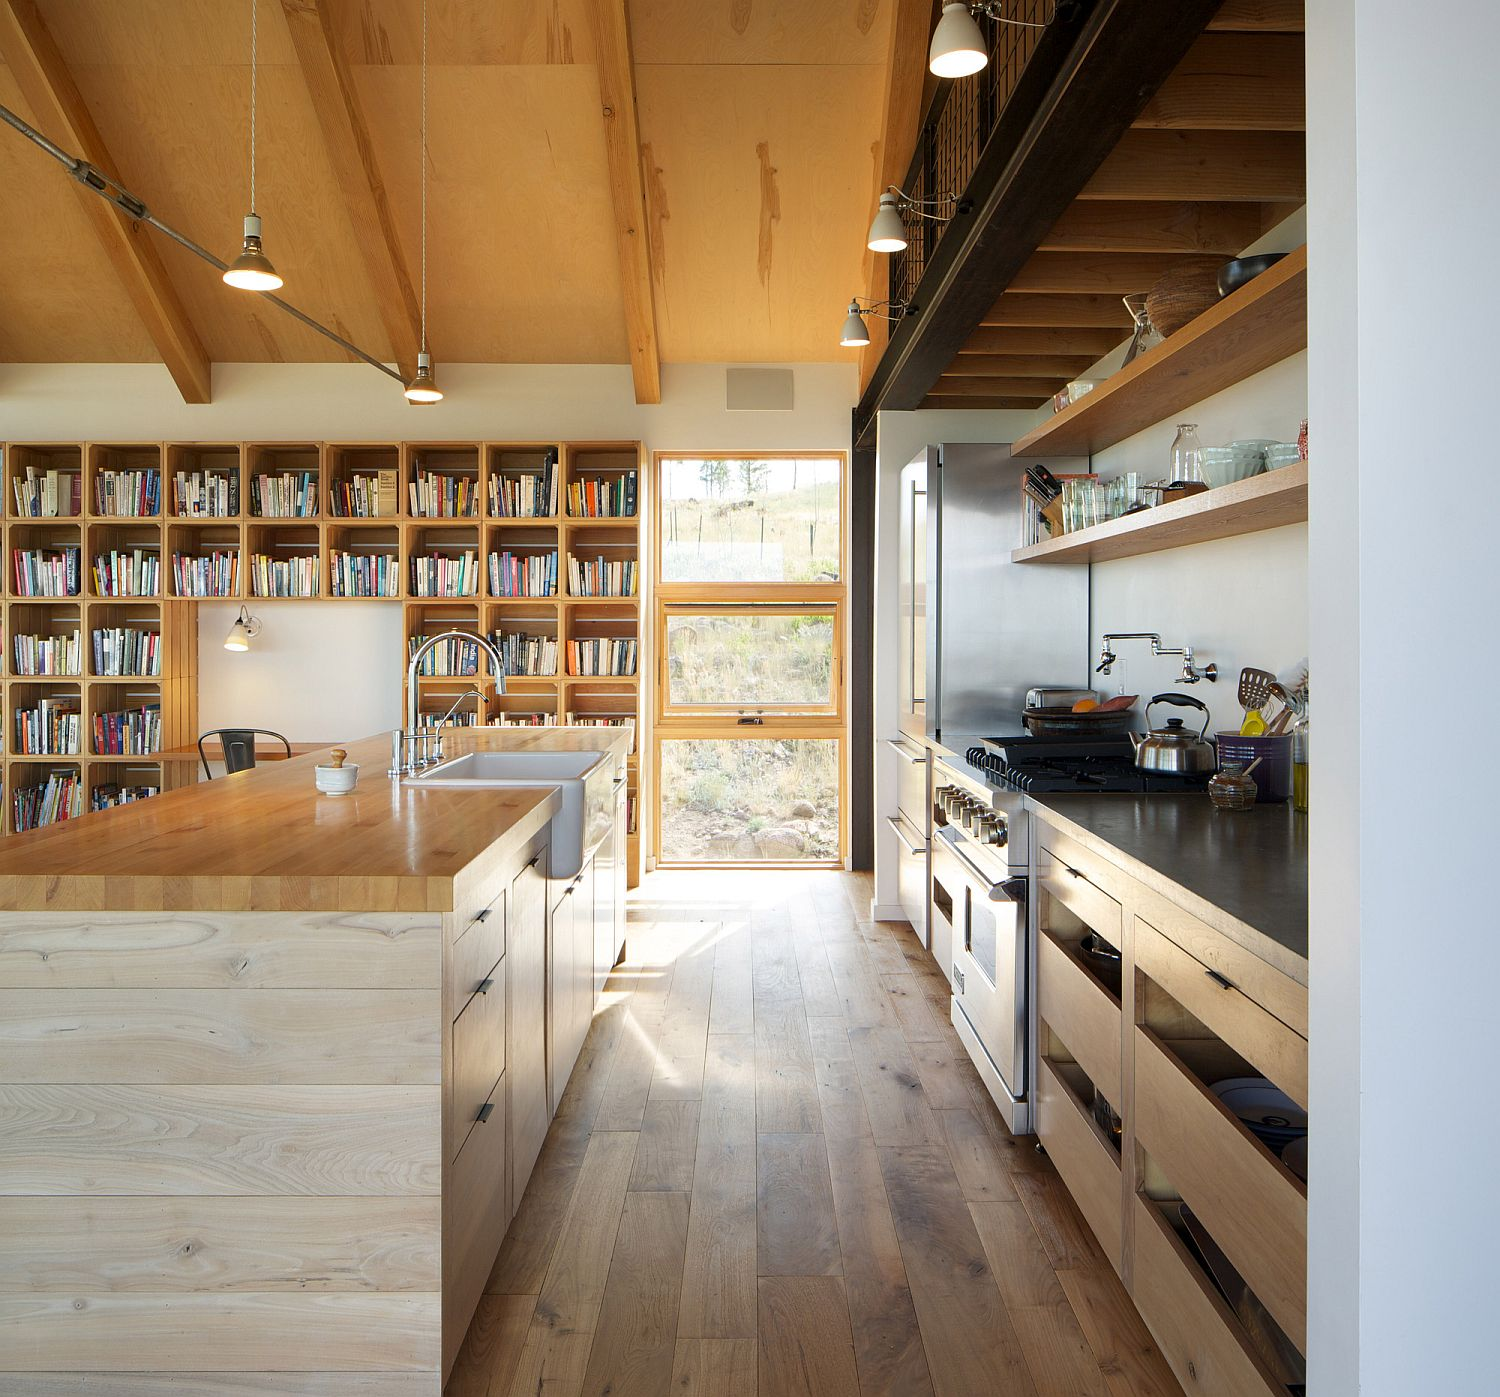 Modern-kitchen-with-open-shelves-and-a-bookshelf-in-the-backdrop